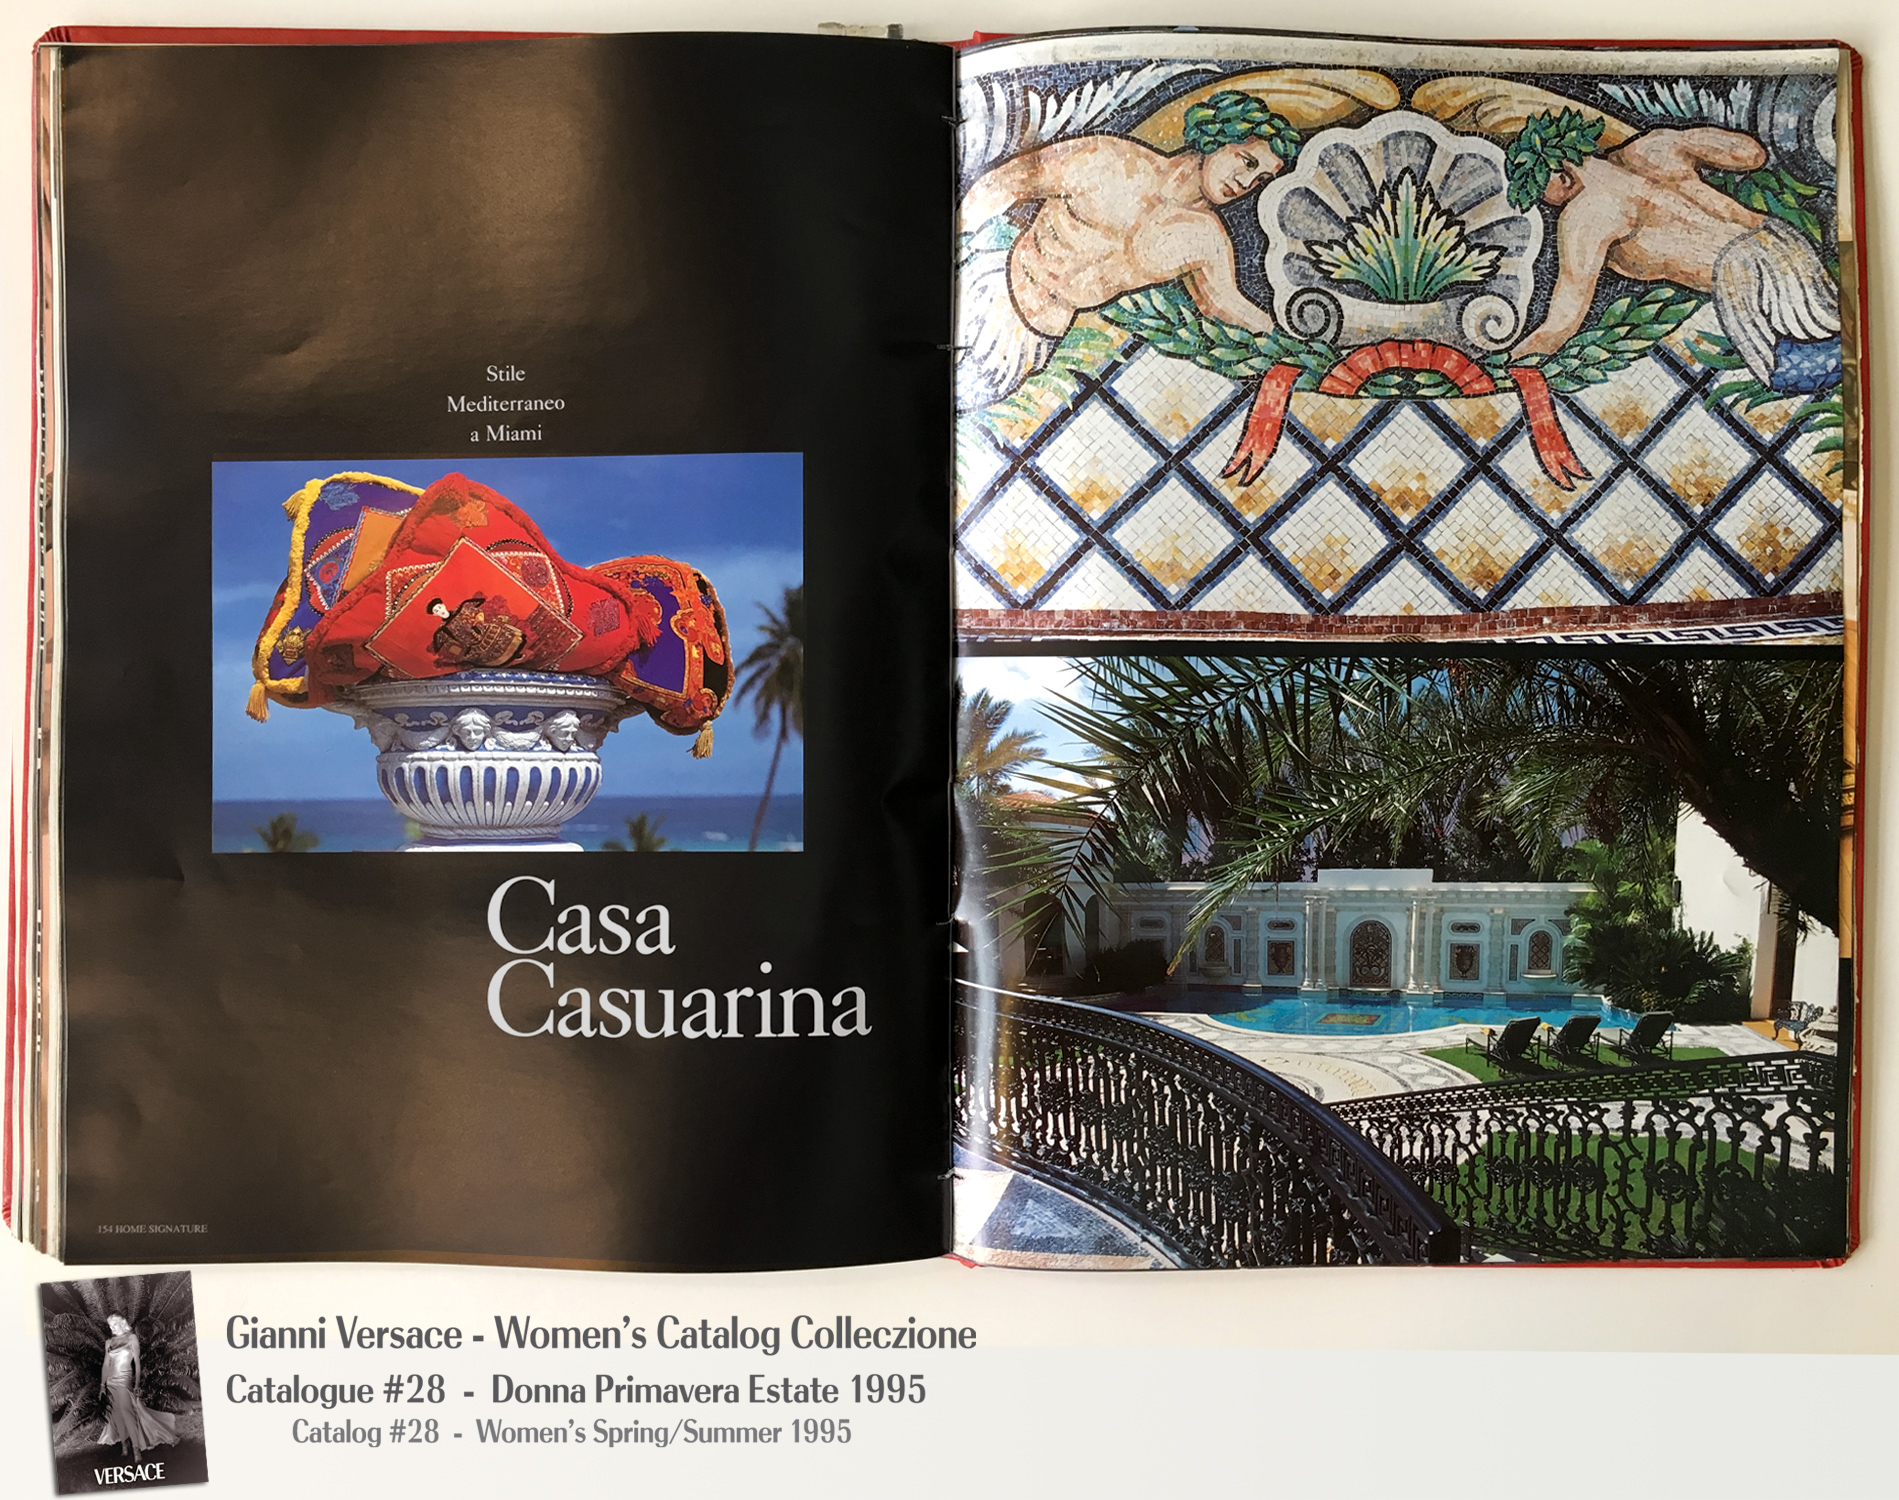 Casa Casuarina Mansion South Beach Book Murder Pool Mosaics Gianni Versace Donna Collezione Primavera Estate Woman's Spring Summer Madonna Catalog Fashion Supermodels #28, 1995